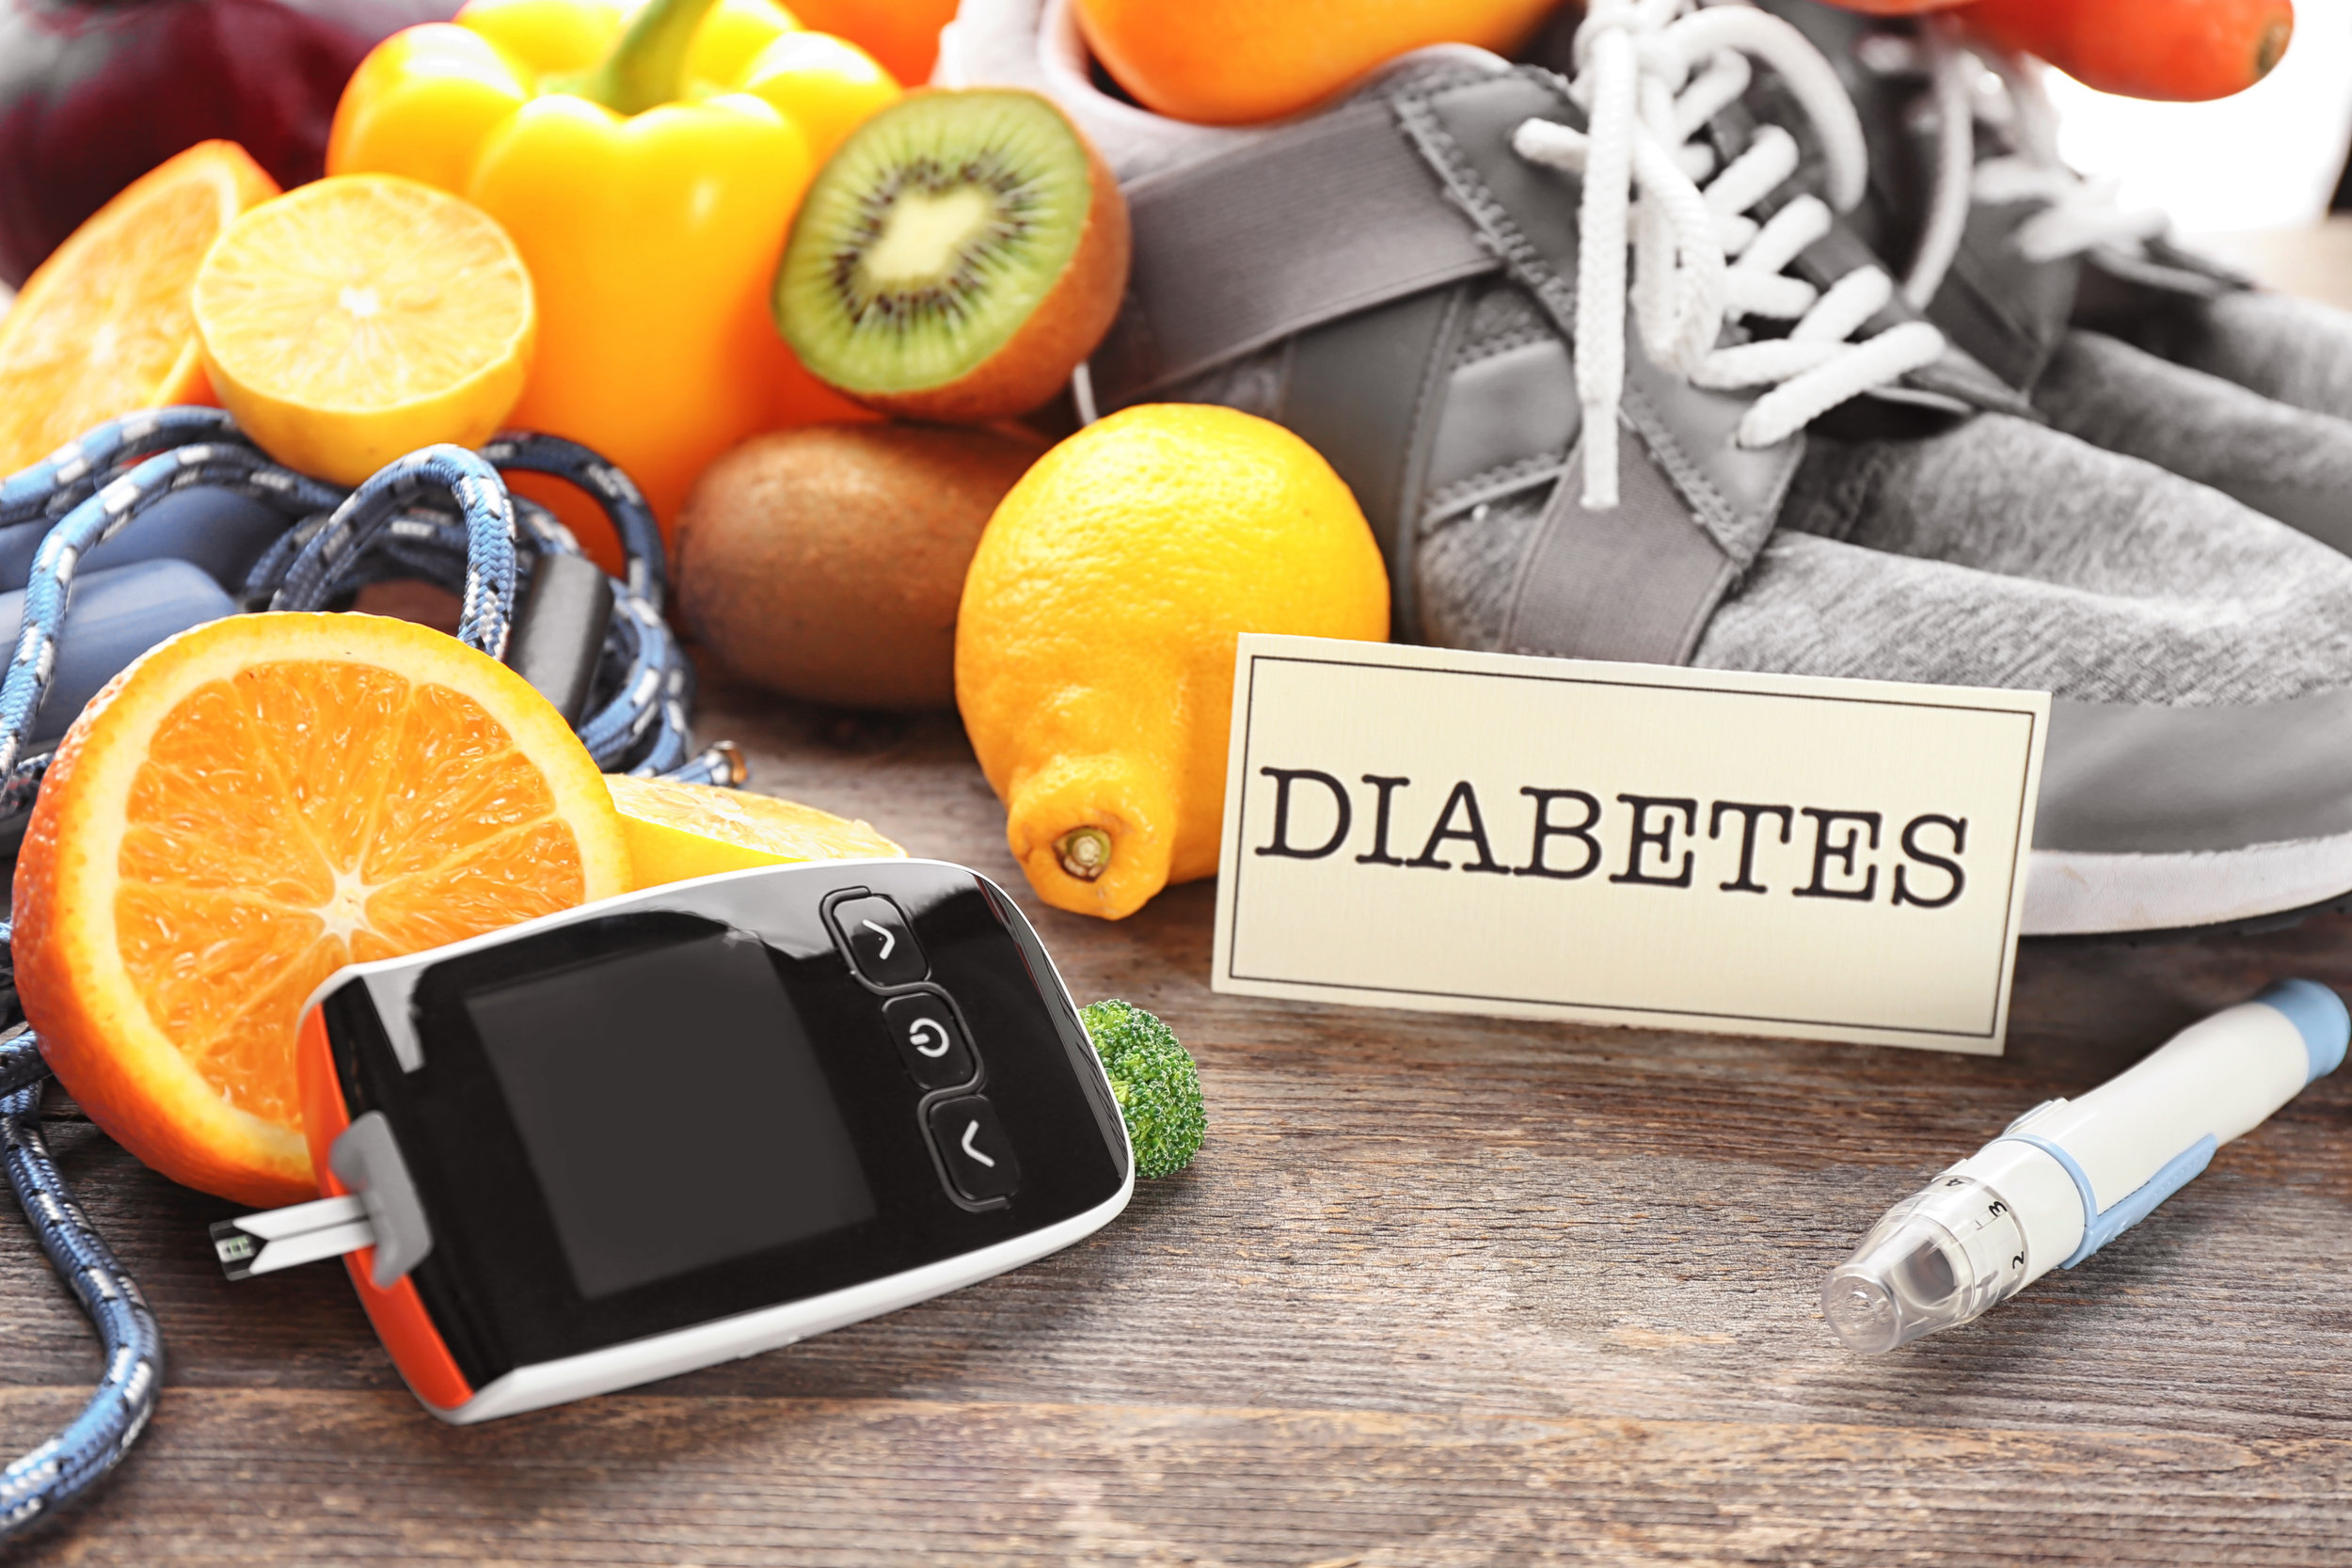 Have type 2 diabetes? Join our Beat Diabetes program to learn the optimal eating pattern for beating diabetes -